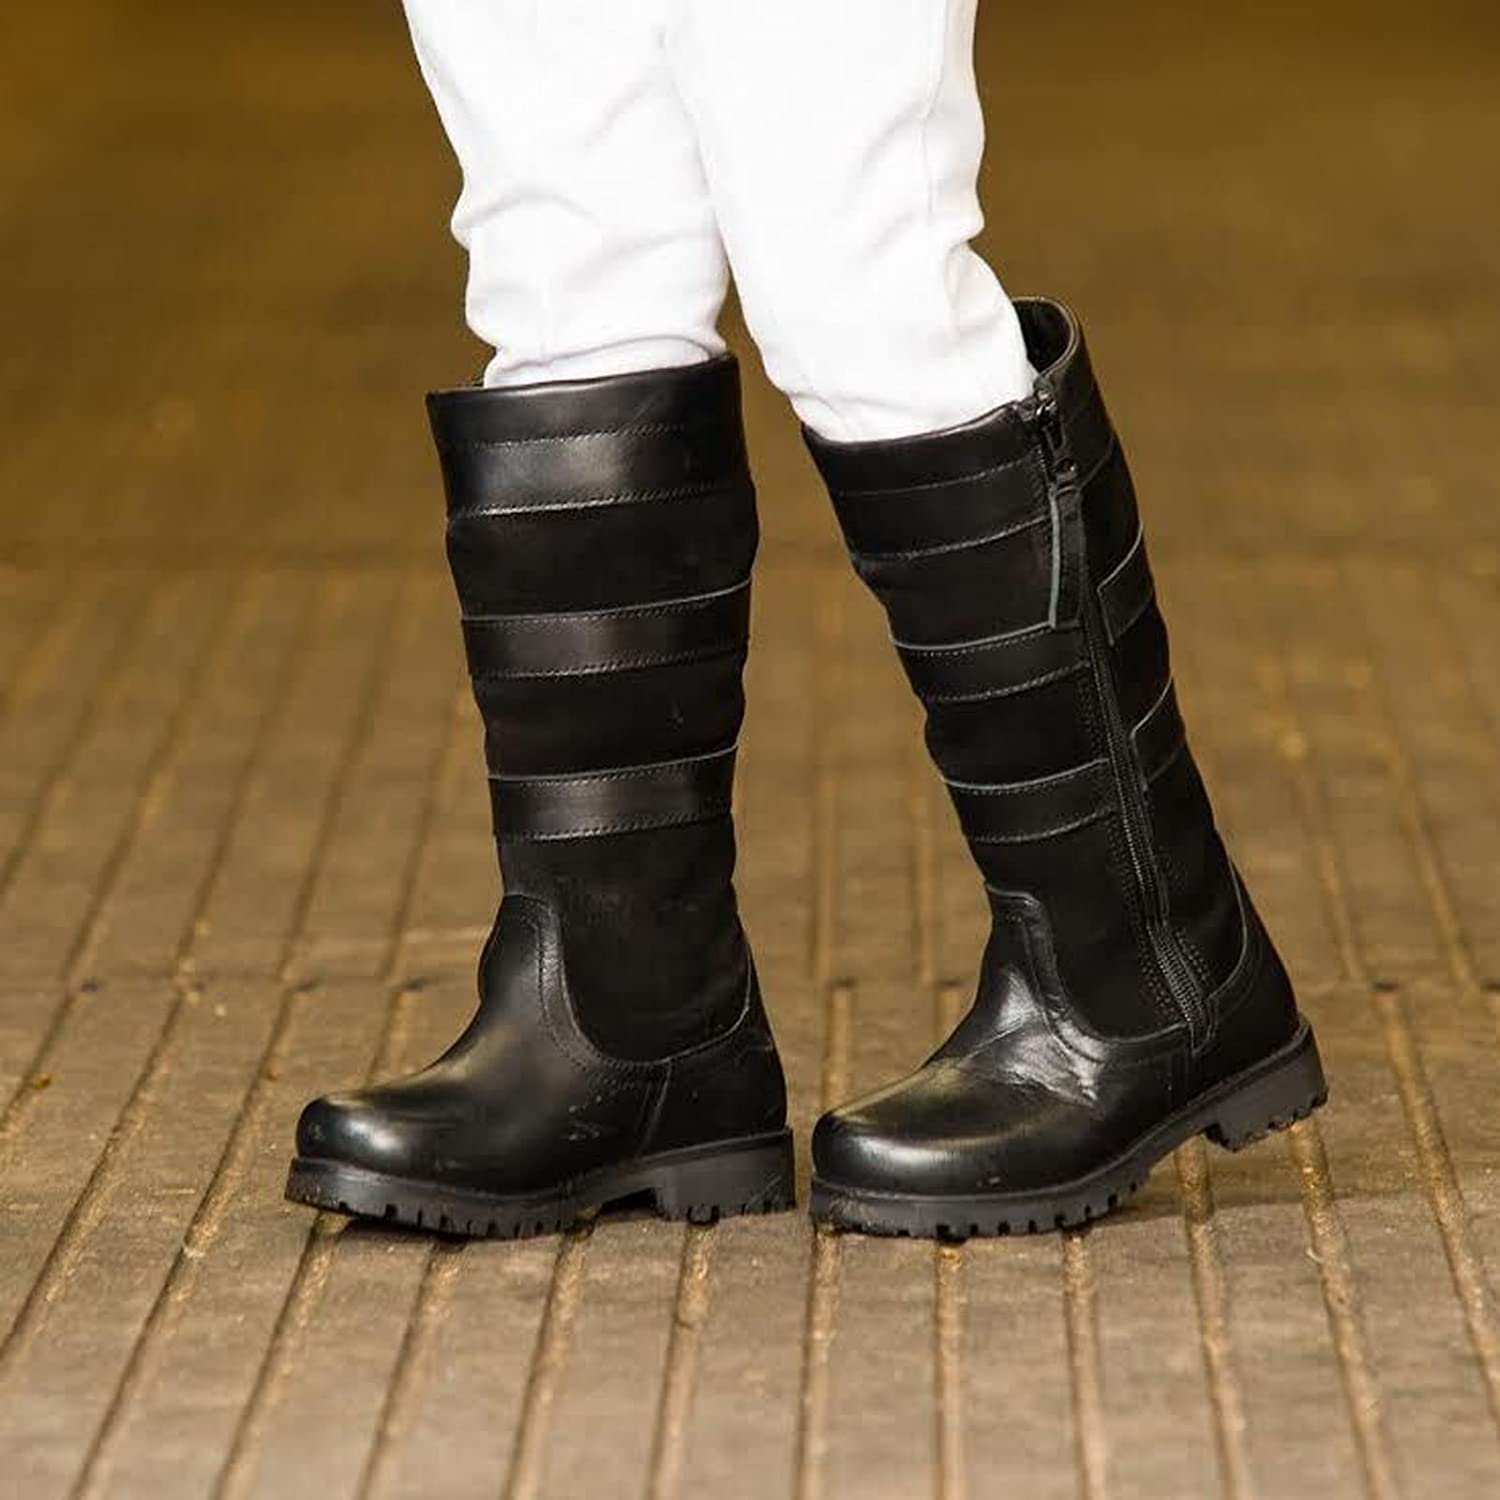 Childrens Pony Horse Riding Waterproof